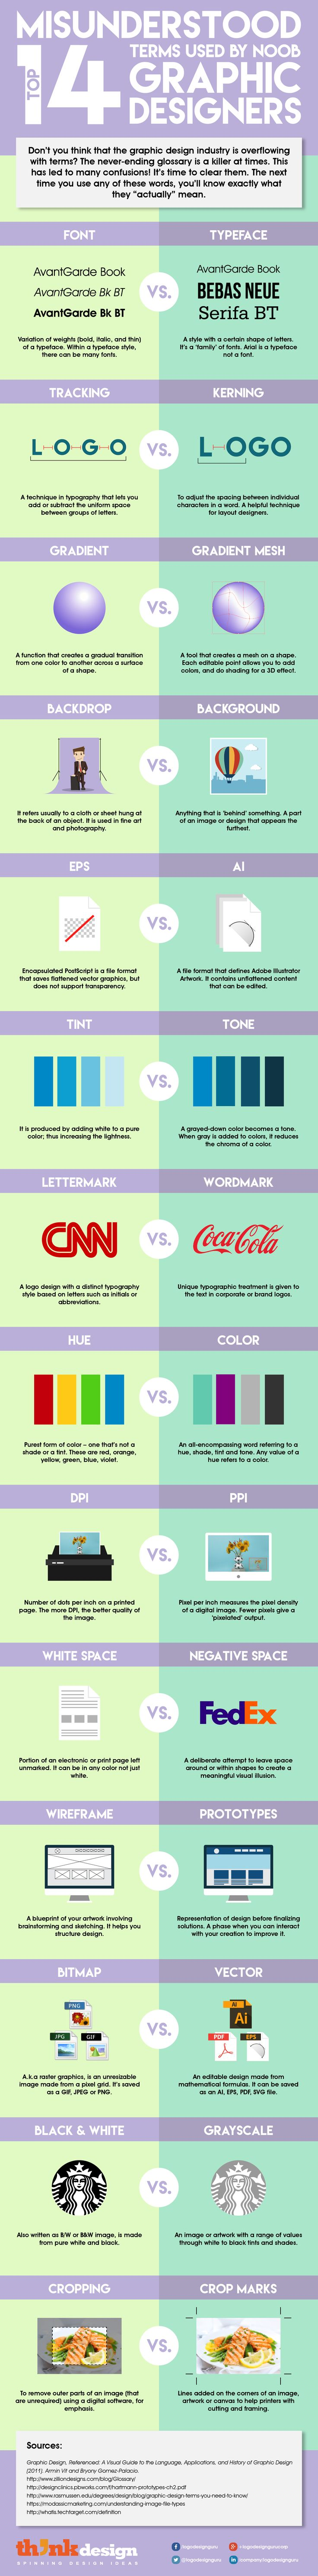 Top 14 Misunderstood Terms Used By Noob Graphic Designers! How many did you know?#glossary #graphicdesign